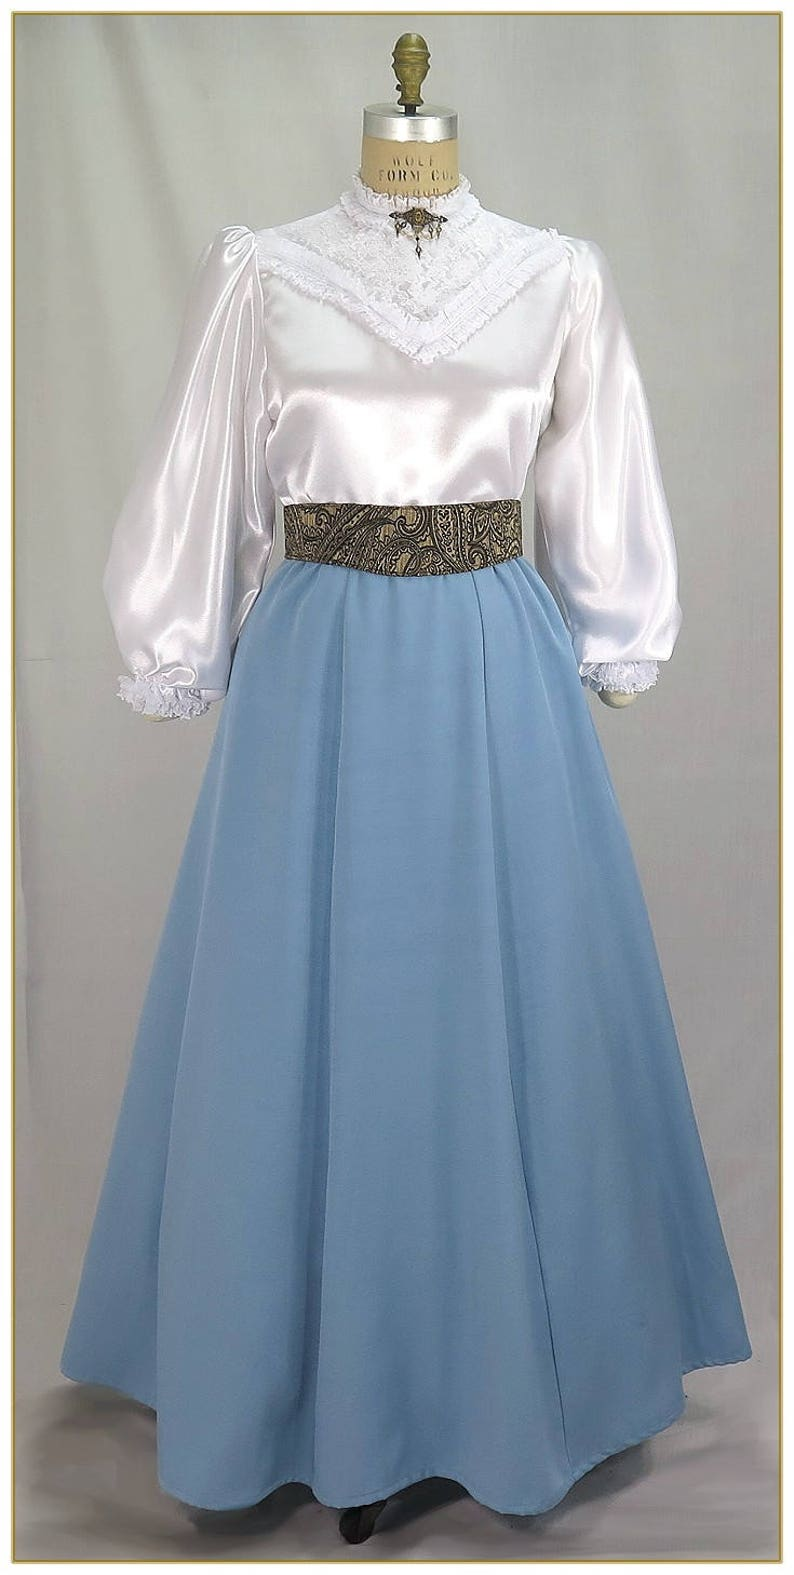 Victorian Skirts | Bustle, Walking, Edwardian Skirts 1890-1905 Sky Blue Victorian Skirt $65.00 AT vintagedancer.com